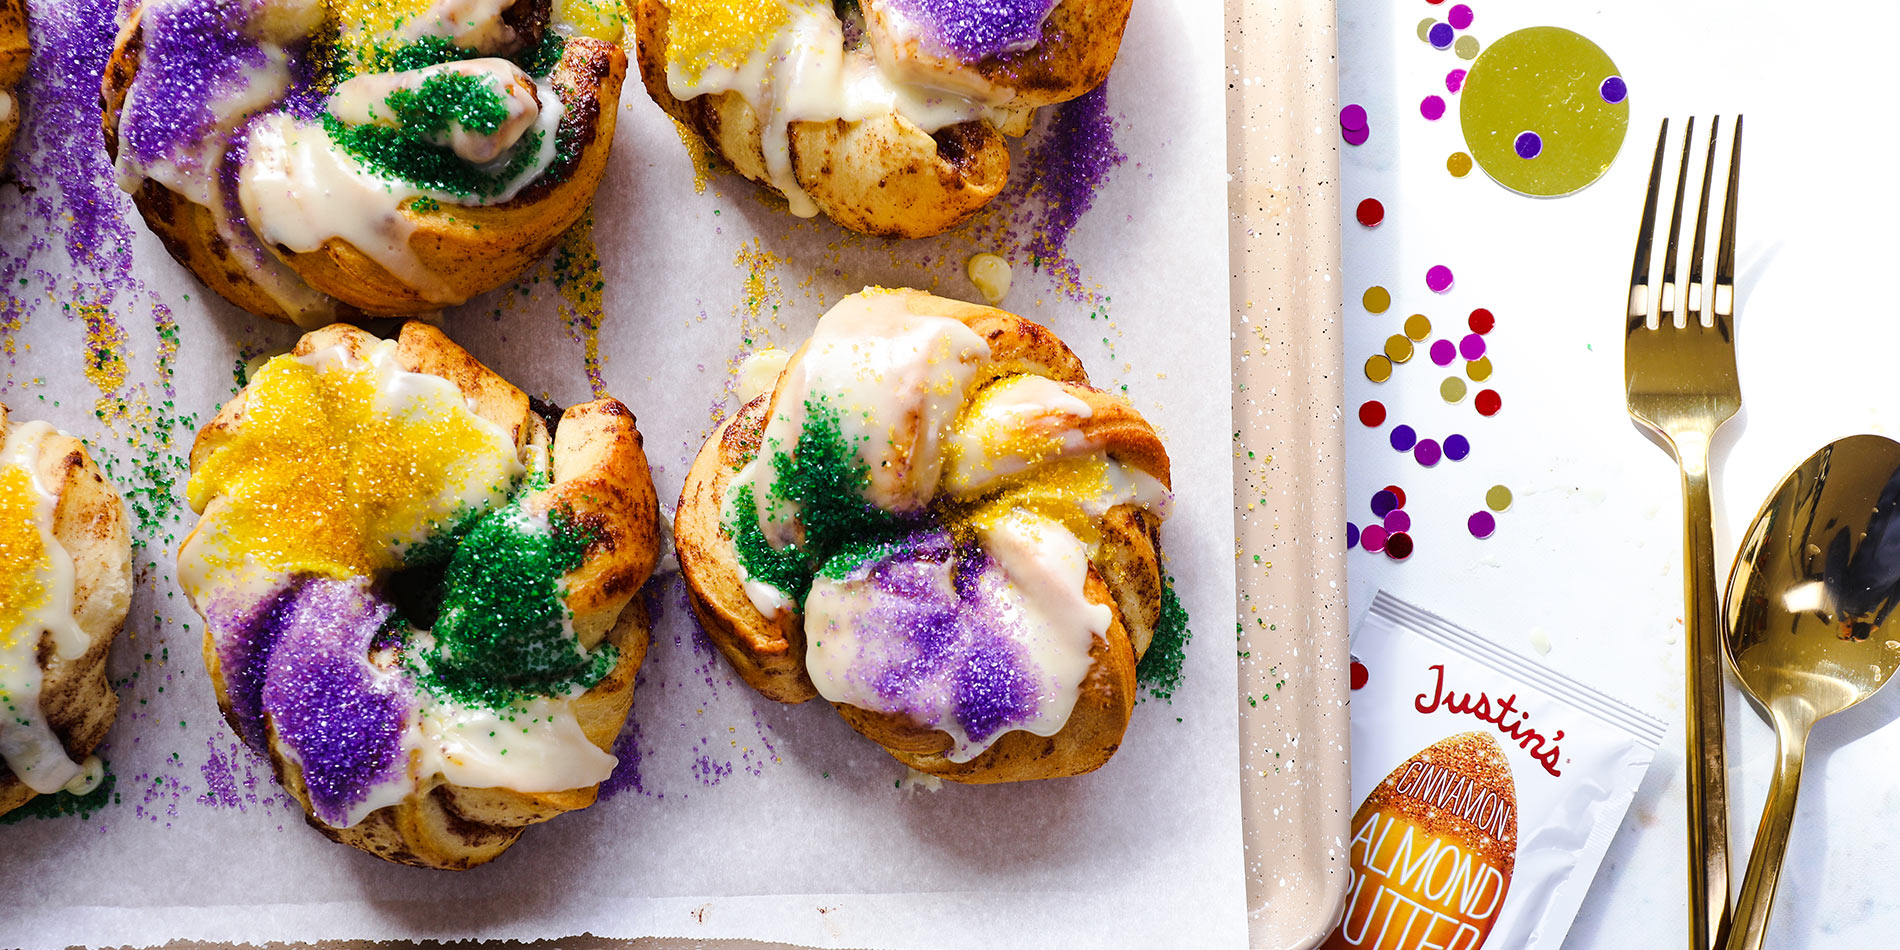 Personal Cinnamon Almond Butter King Cakes on top of a tray with parchment paper with rainbow confetti on a white background